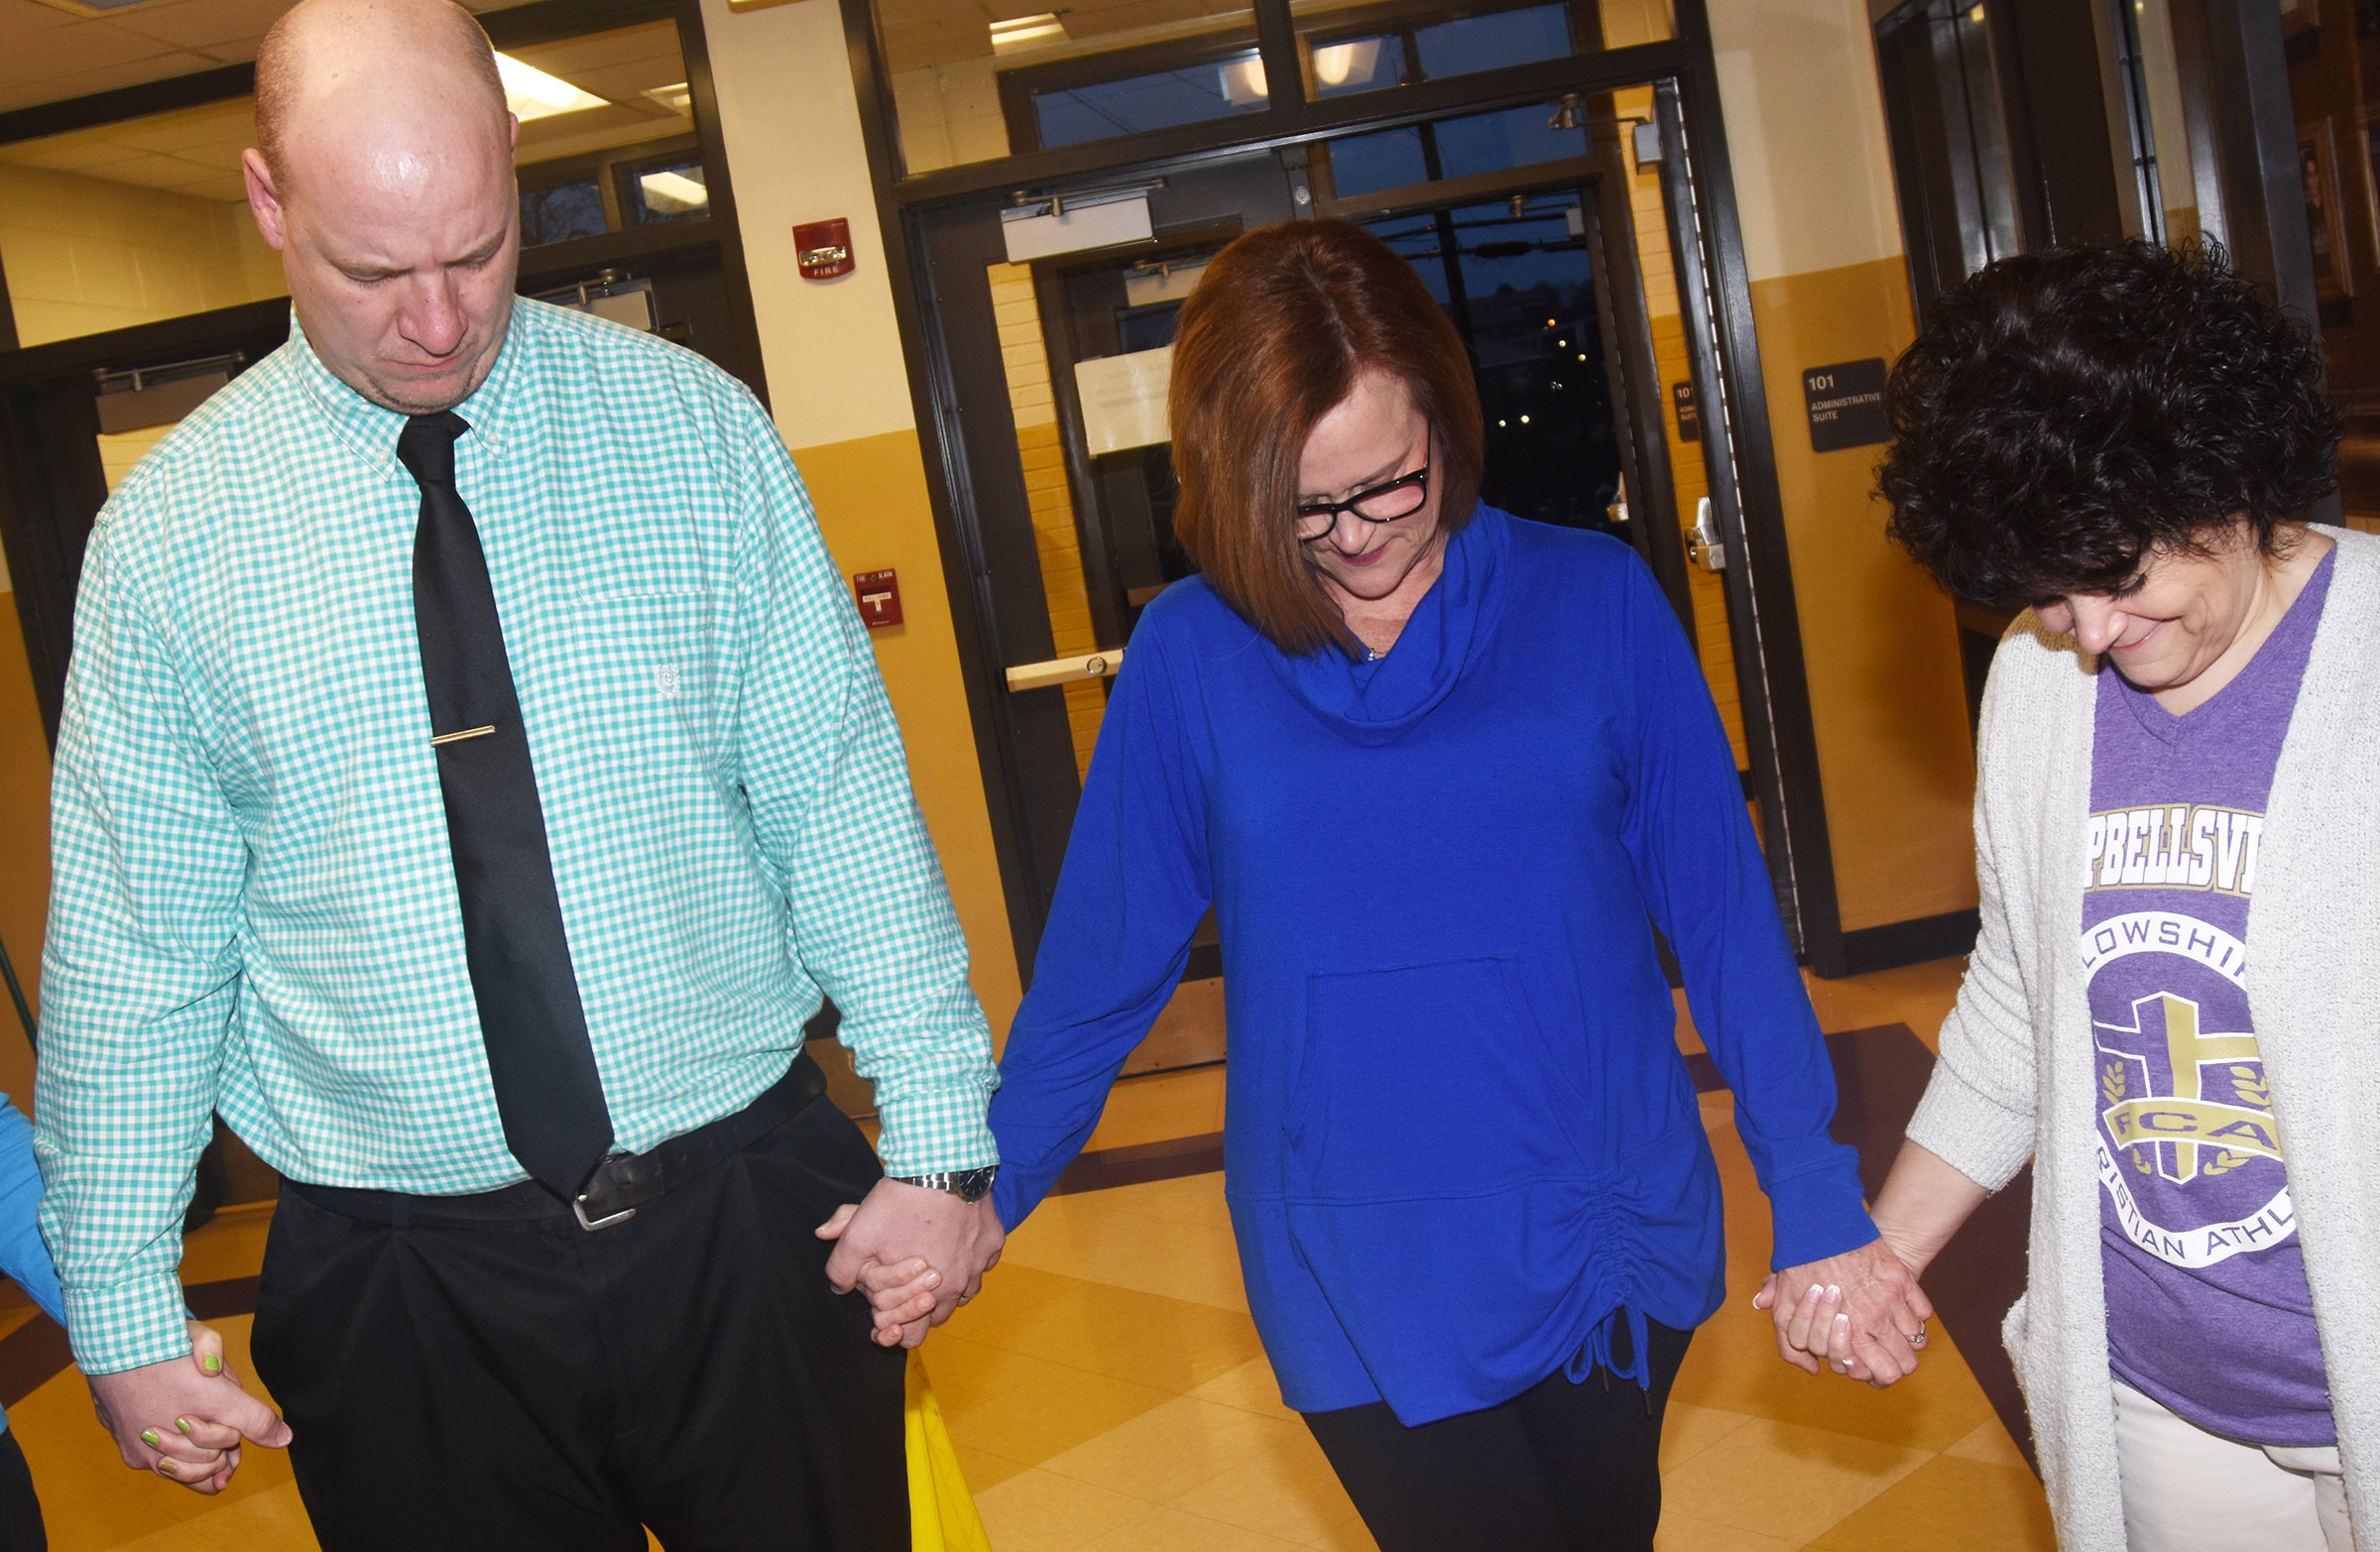 CHS hosted a prayer circle on Thursday, March 1. From left are CHS Principal David Petett and teachers Mary Jo Hazel and Cheryl Dicken.